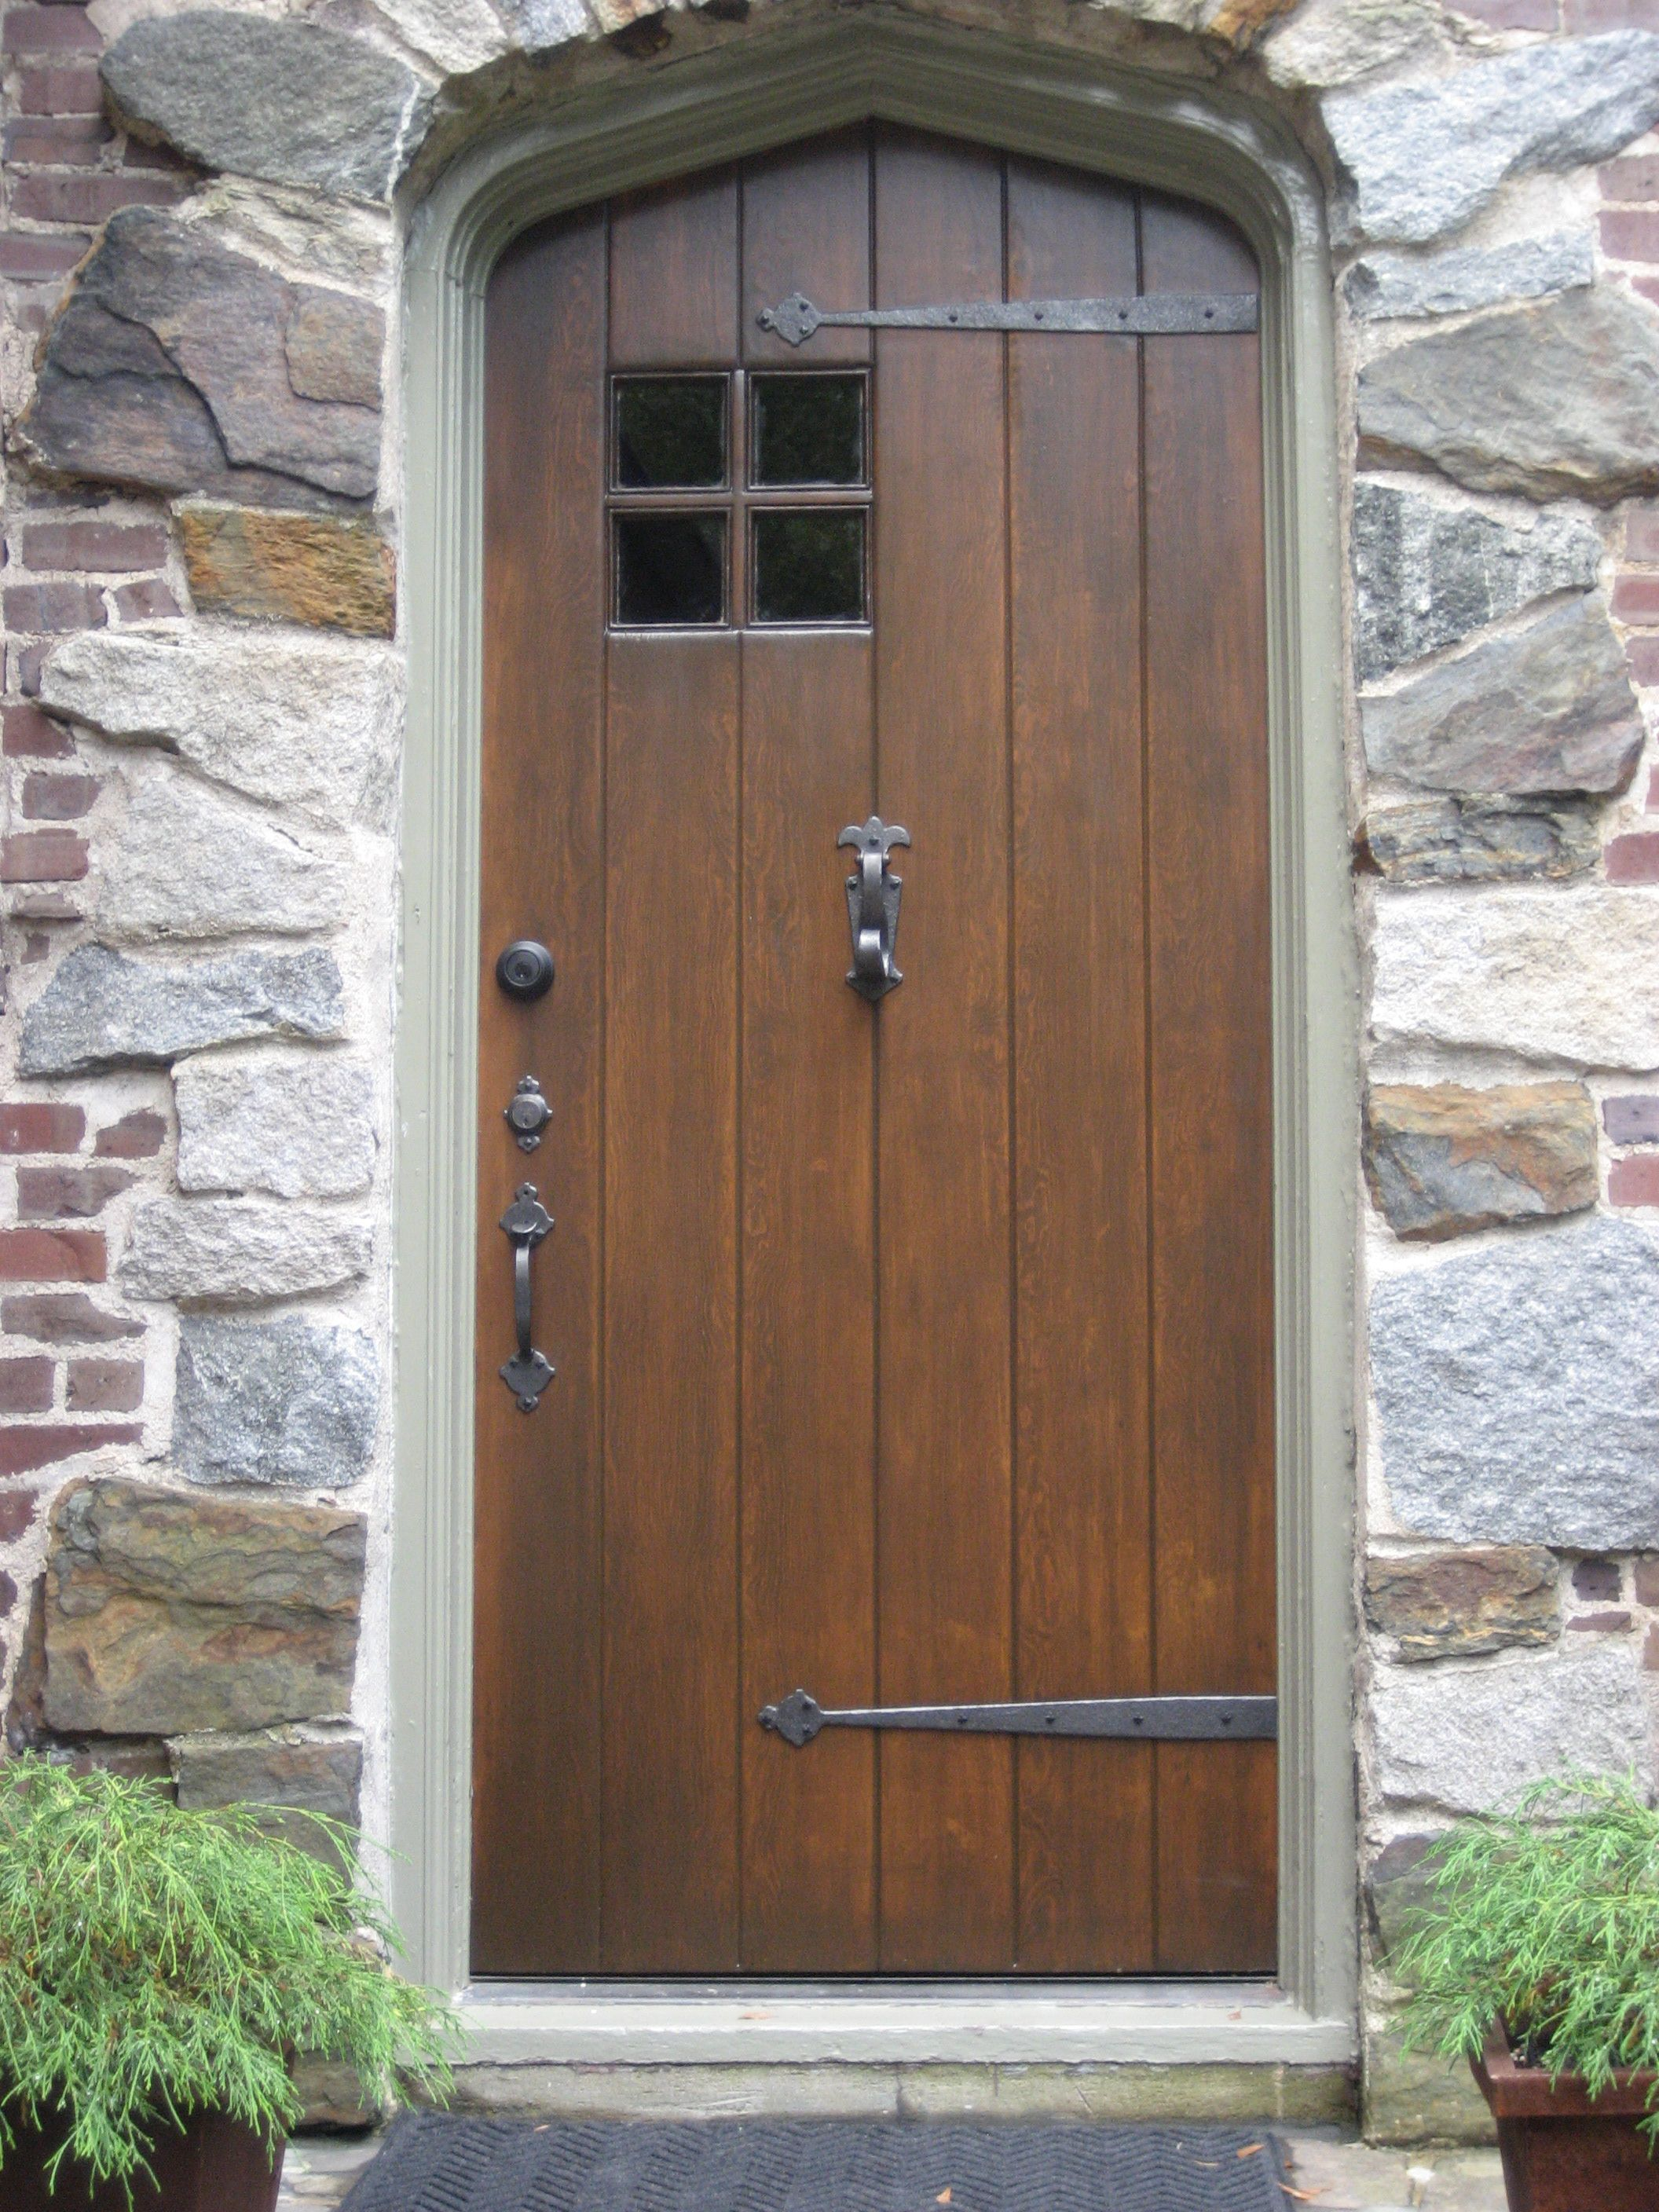 1928 Storybook Tudor Solid Wood Doors Exterior Wooden Door